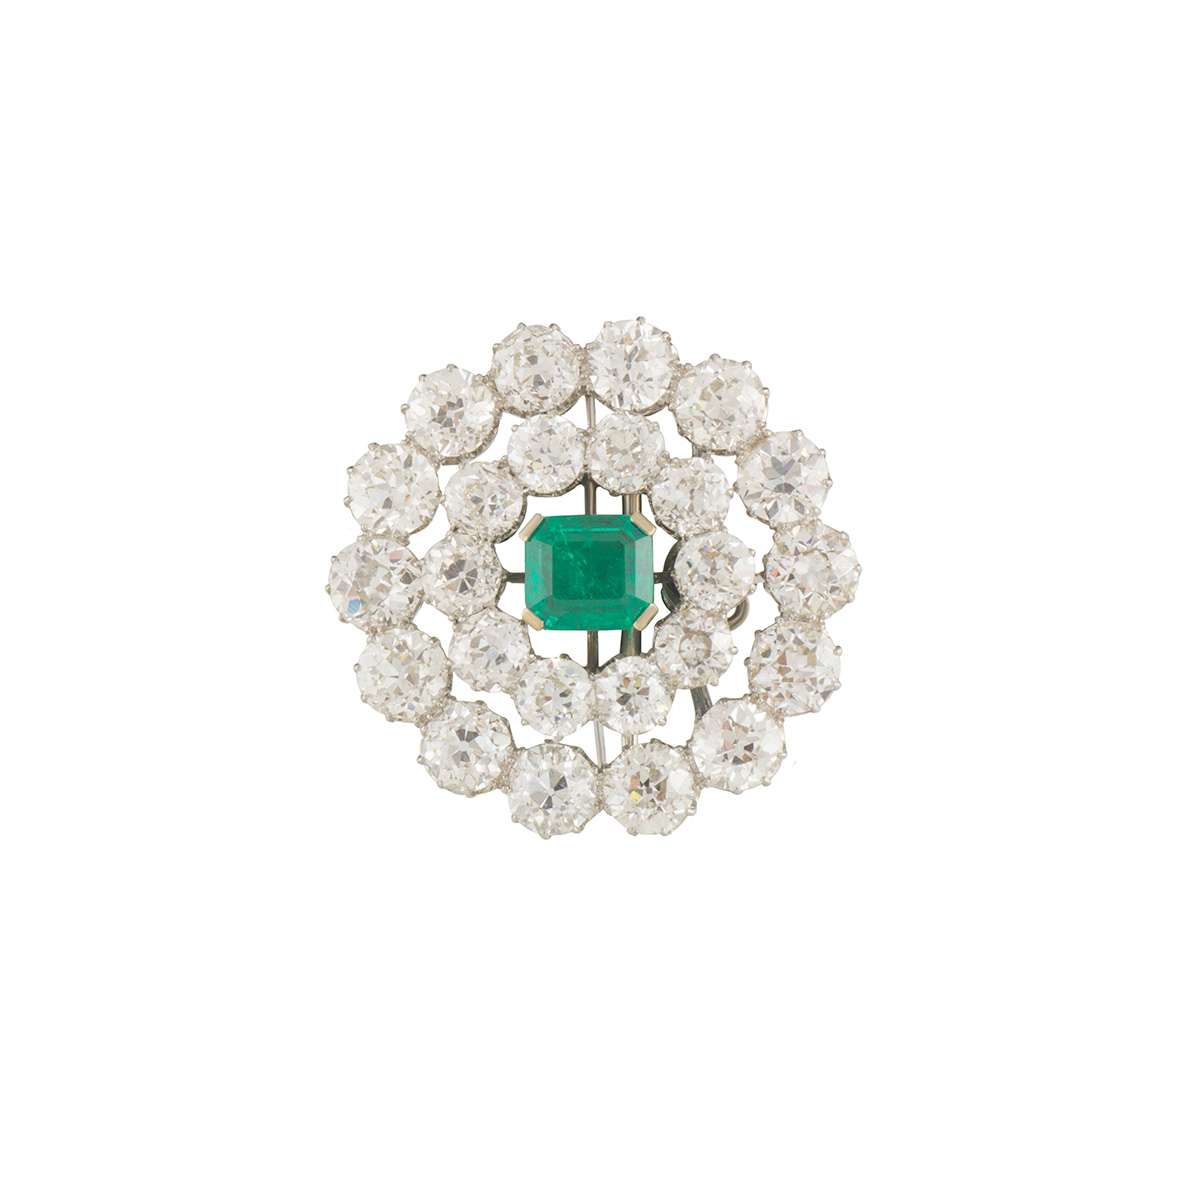 Early 20th Century Emerald and Diamond Brooch